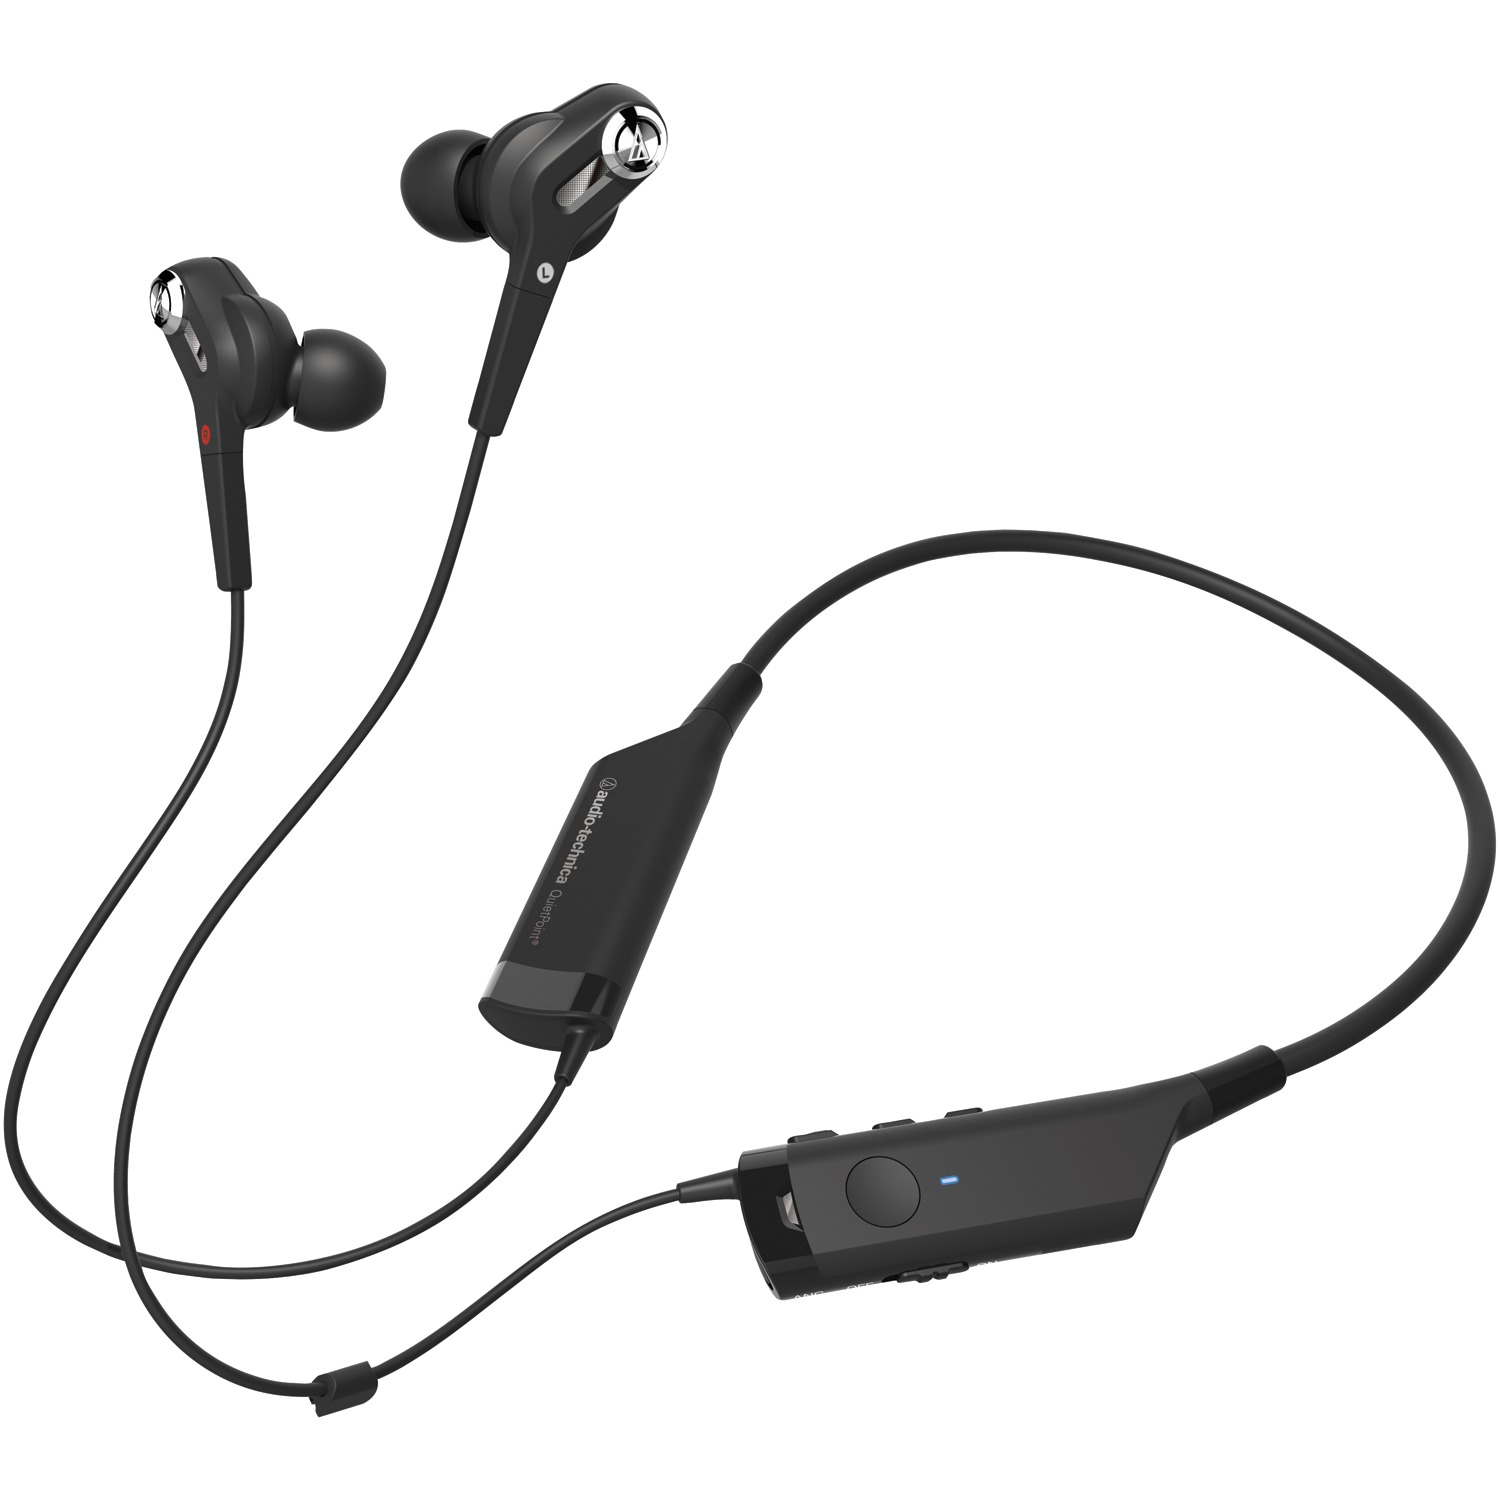 Audio-Technica ATH-ANC40BT QuietPoint ATH-ANC40BT Noise-Canceling In-Ear Bluetooth Headphones